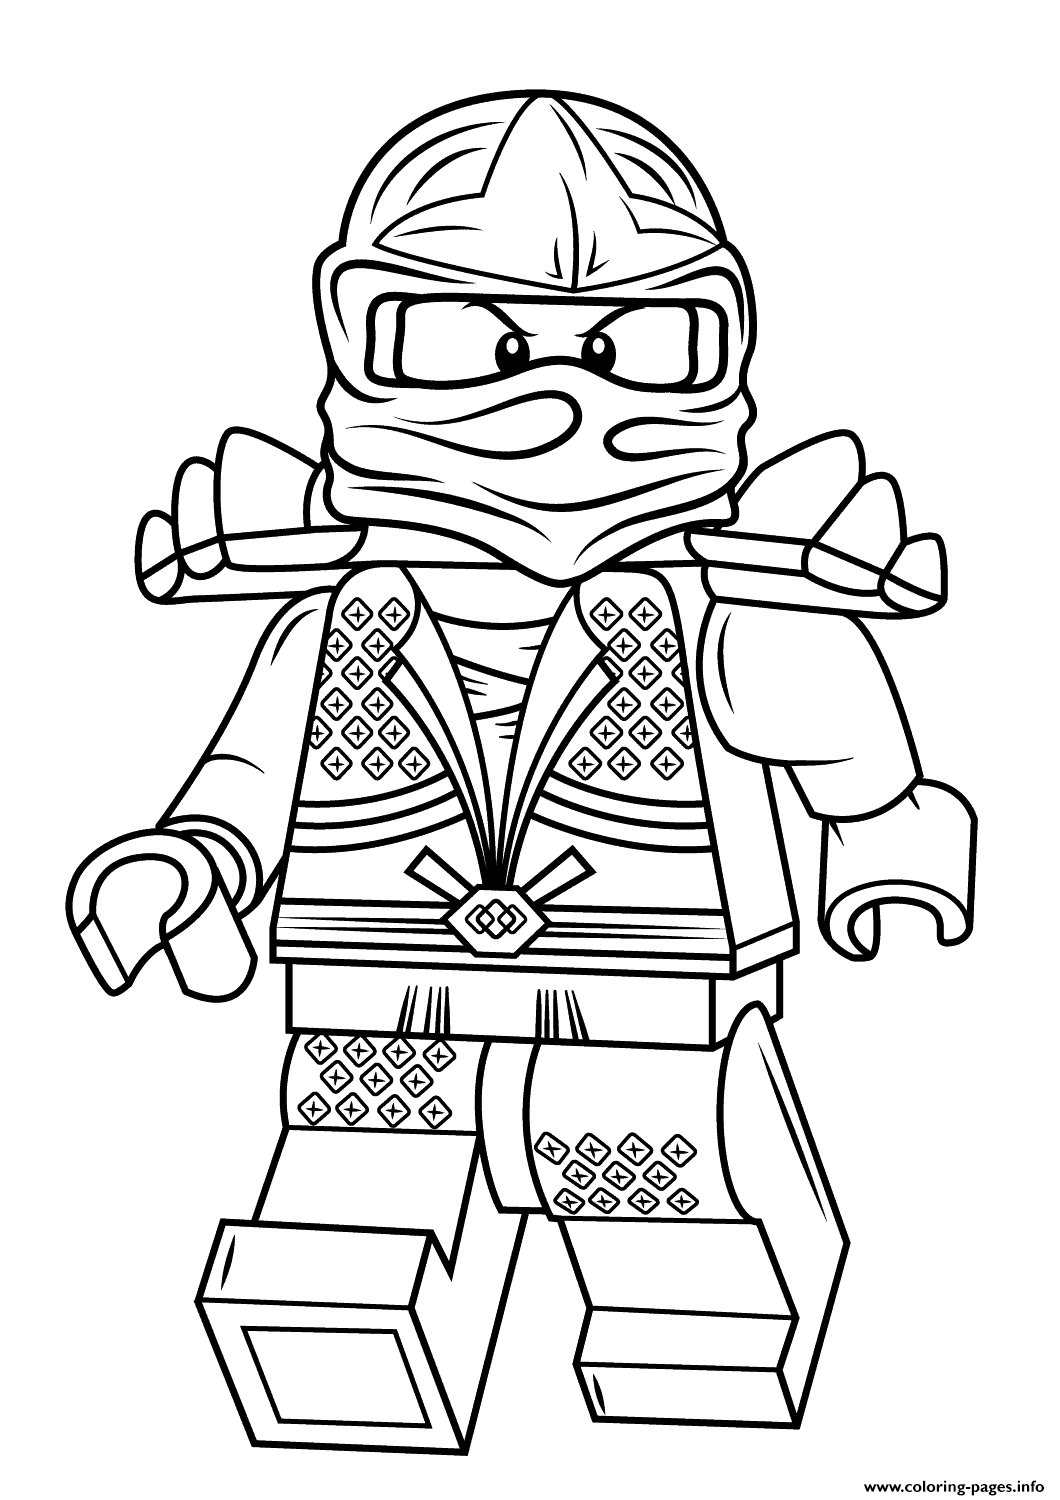 Lego Ninjago Lloyd Zx Coloring Pages Printable